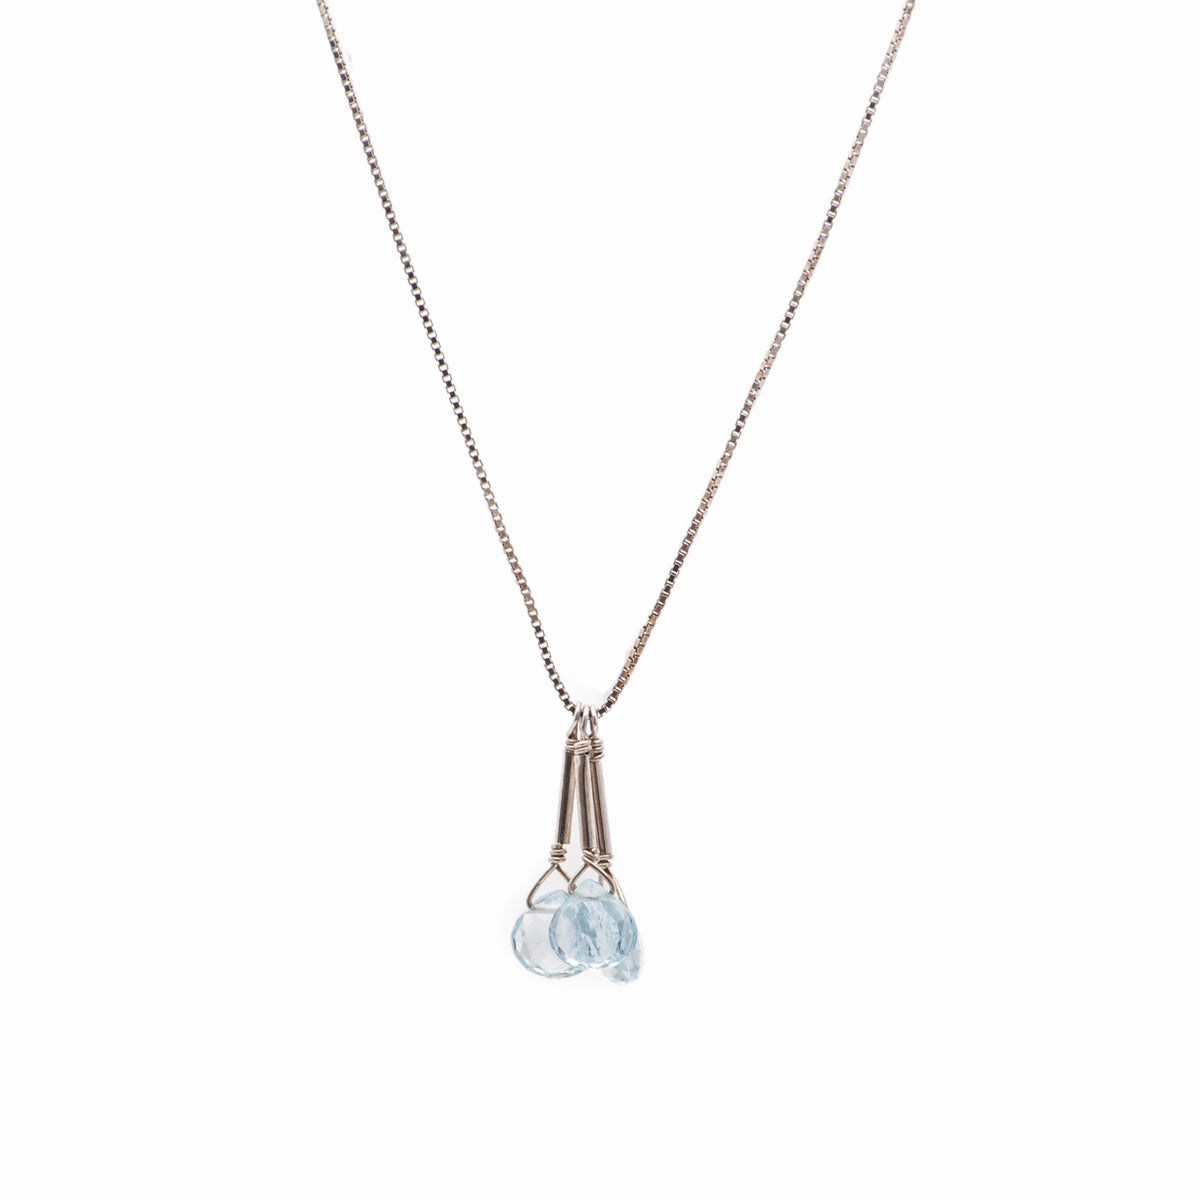 Iconic Gold and Faceted Three Aquamarine Drops Necklace